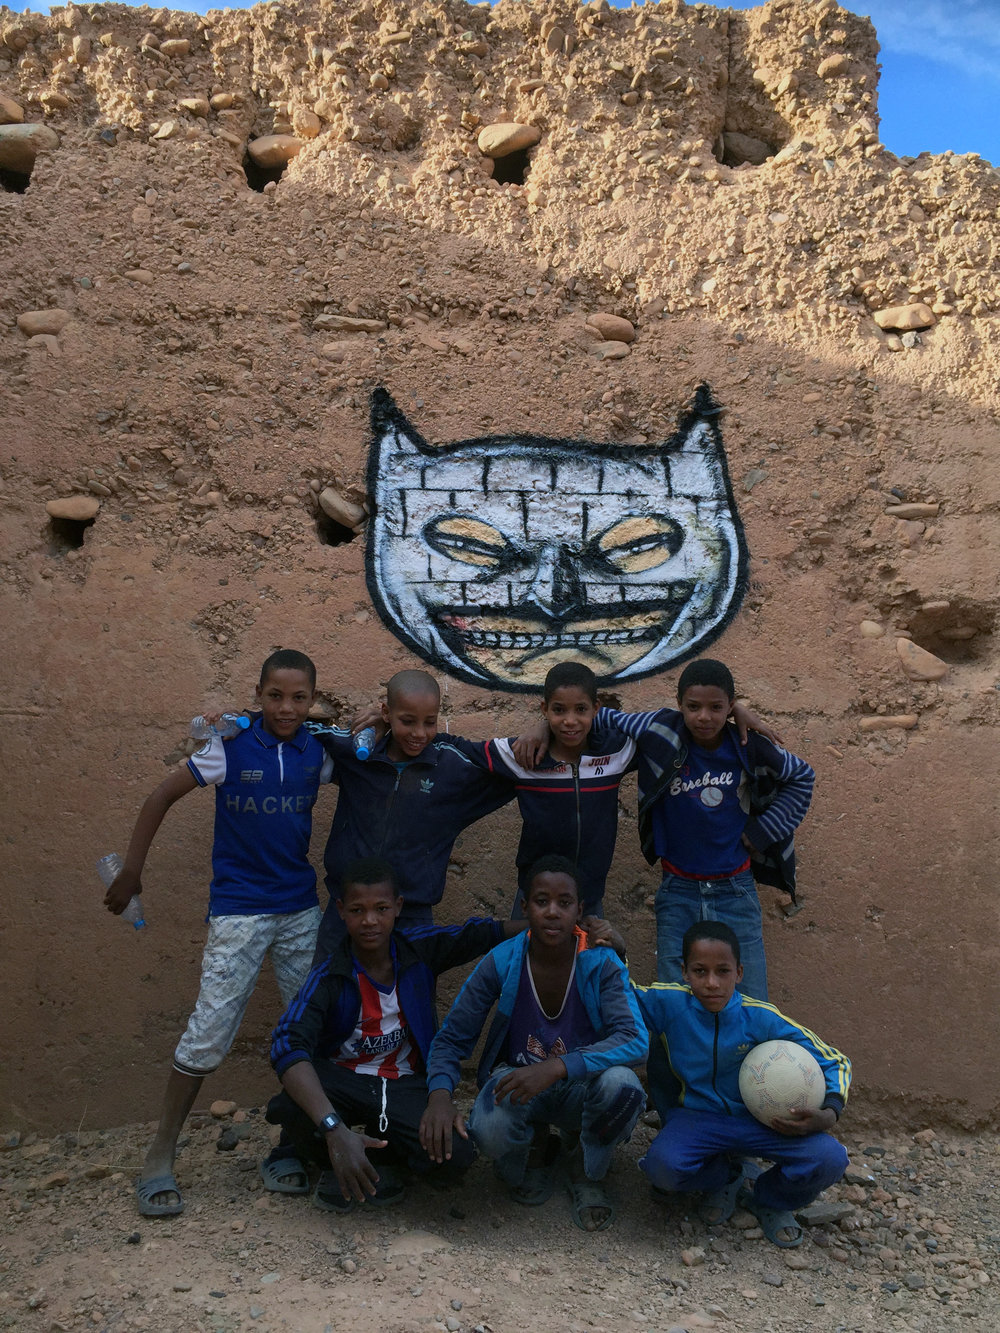 Kids in front of a mural by David Choe for Igloo Hong art interventions in Adgz, Morocco, 2016